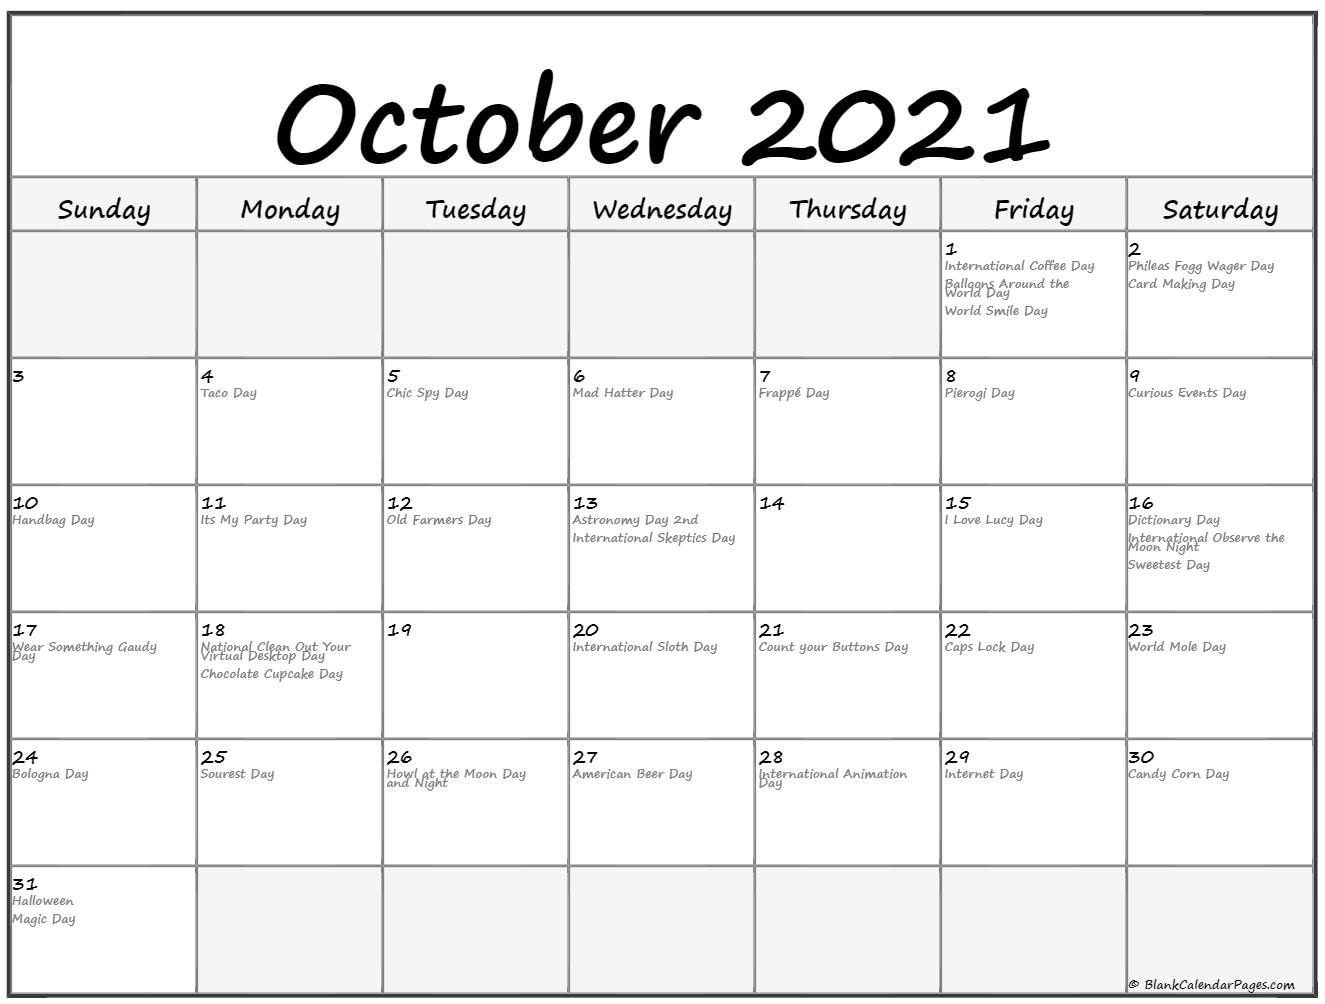 October 2019 funny holidays calendar